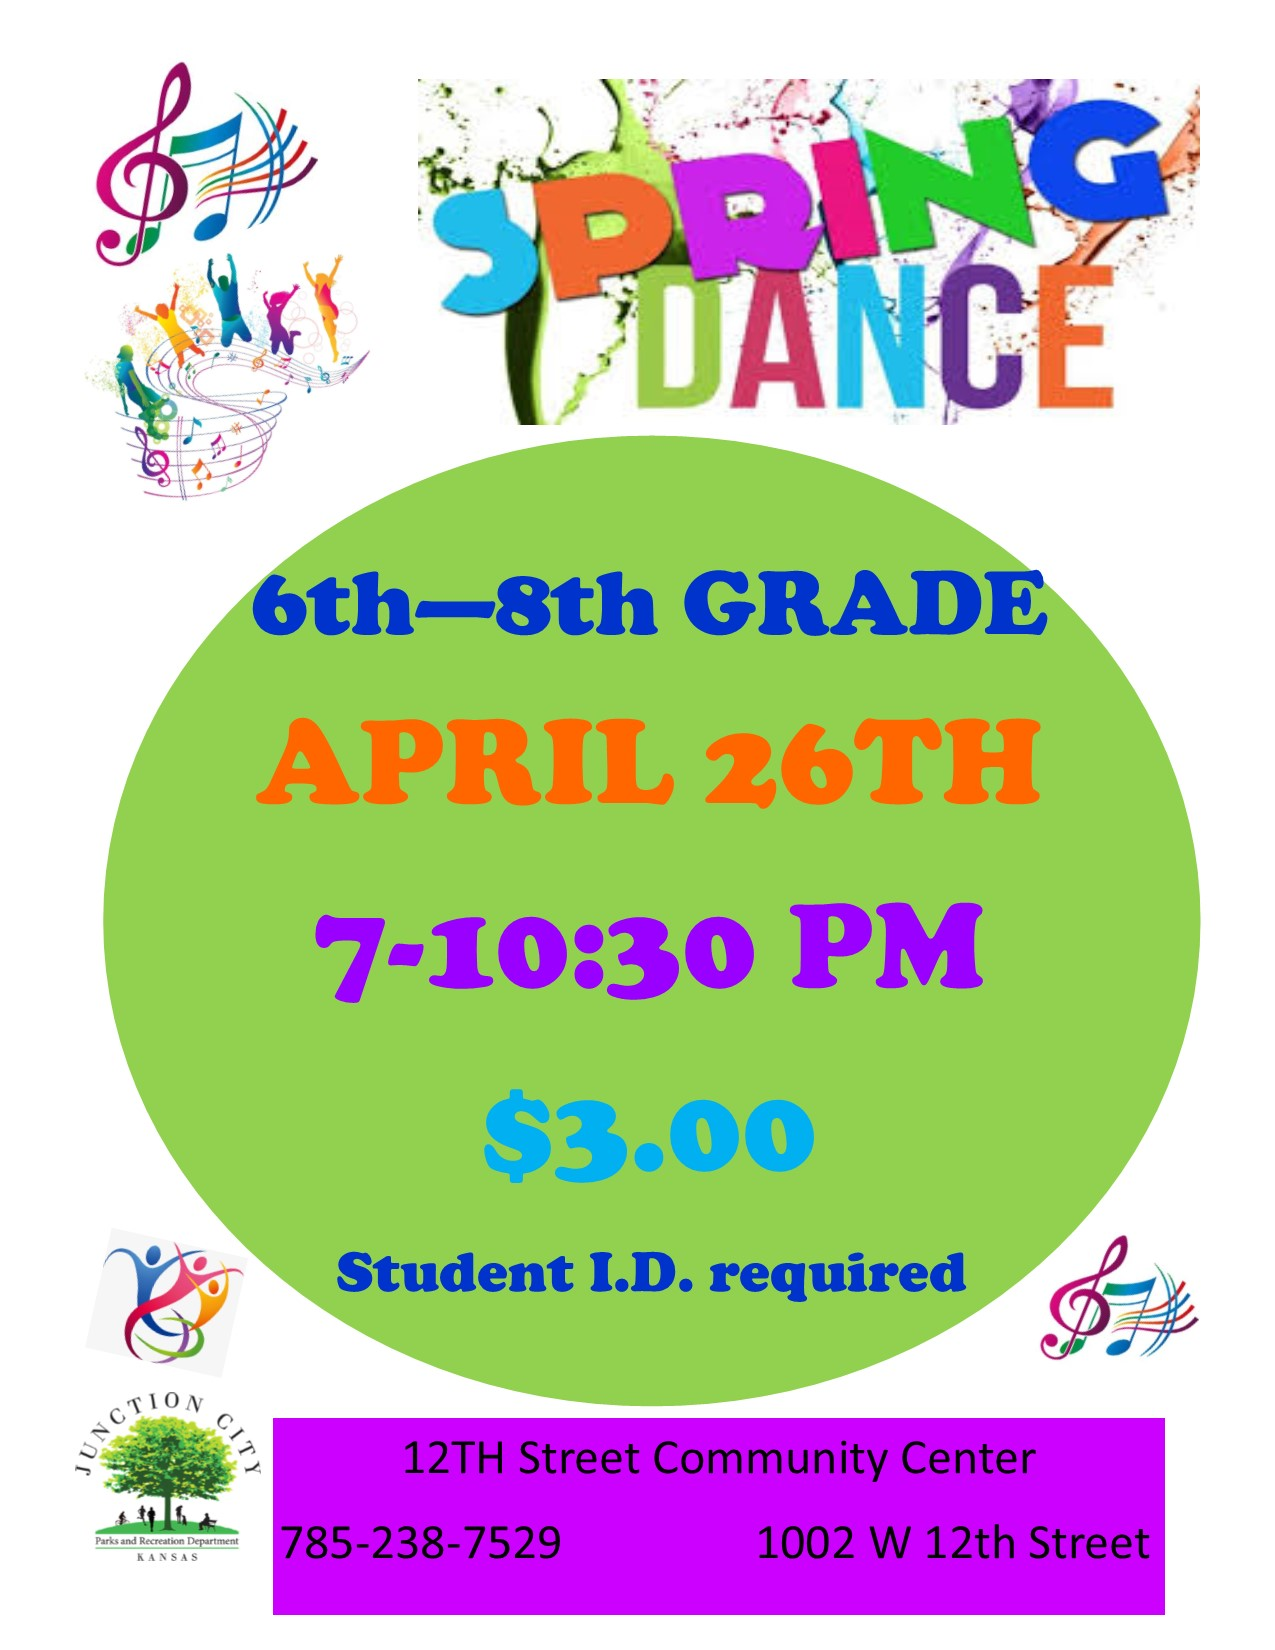 12th Street Community Center 6th-8th Grade Spring Dance Flyer